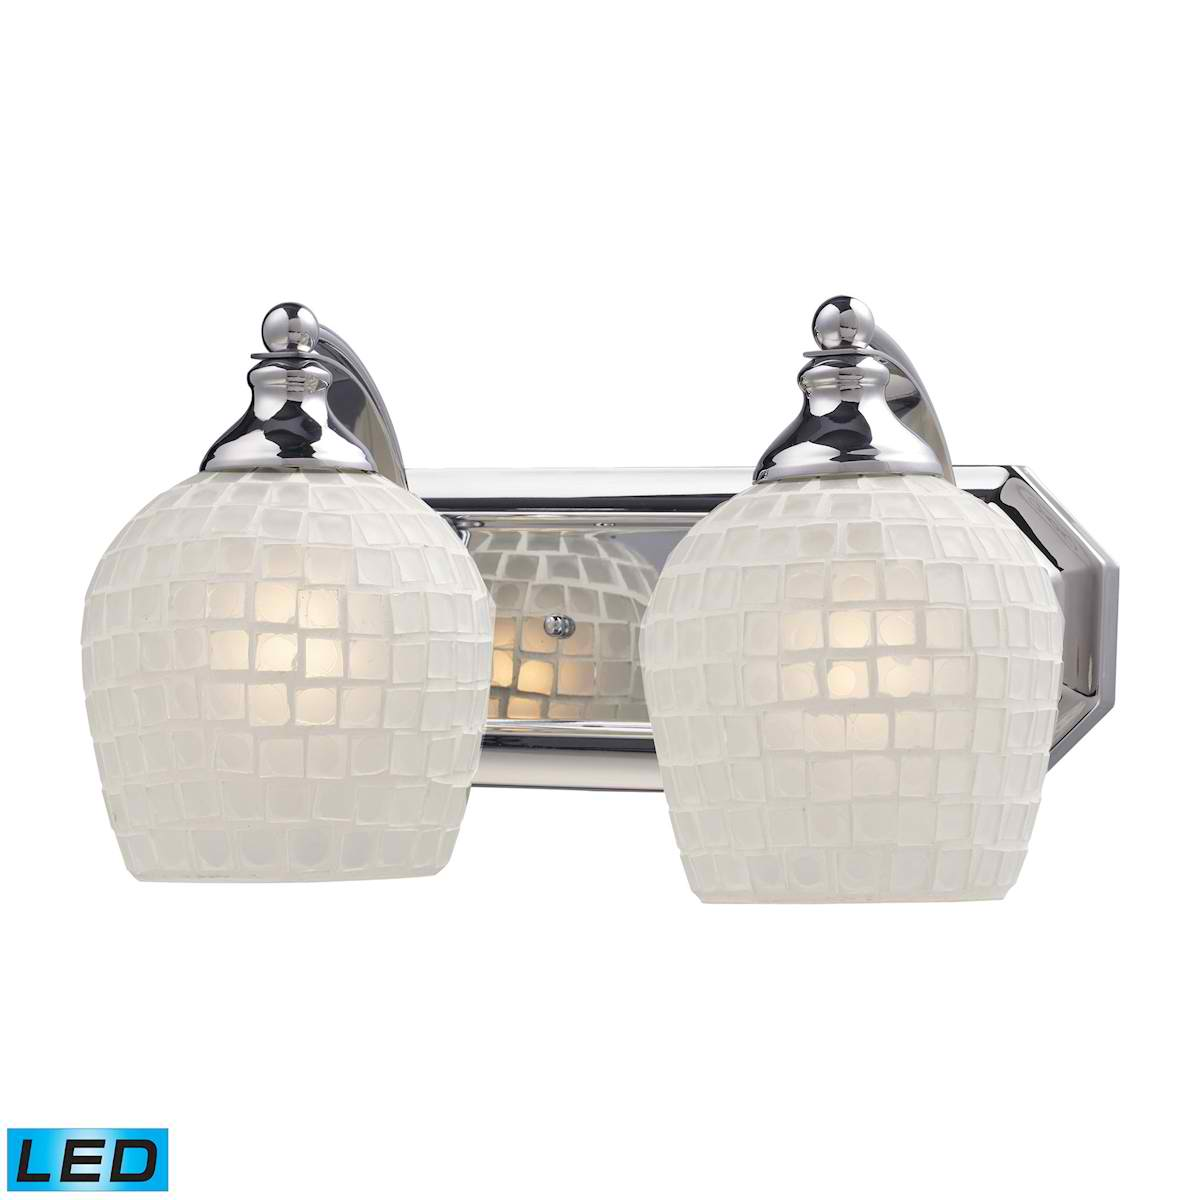 2 Light Vanity in Polished Chrome and White Mosaic Glass - LED, 800 Lumens (1600 Lumens Total) With Full Scale